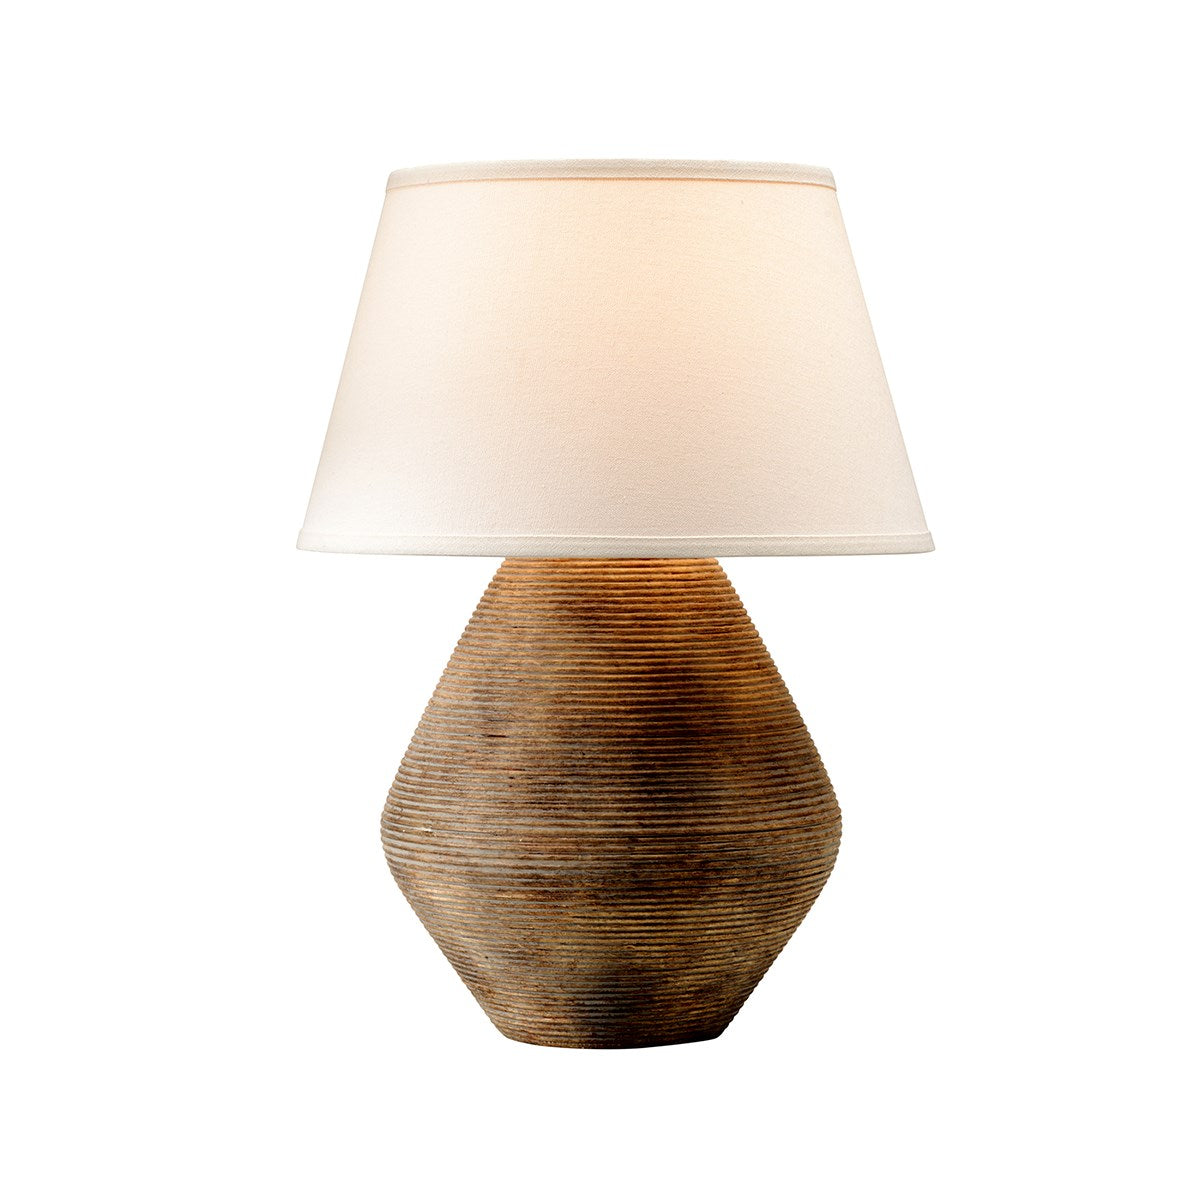 Calabria Textured Table Lamp - Rug & Weave